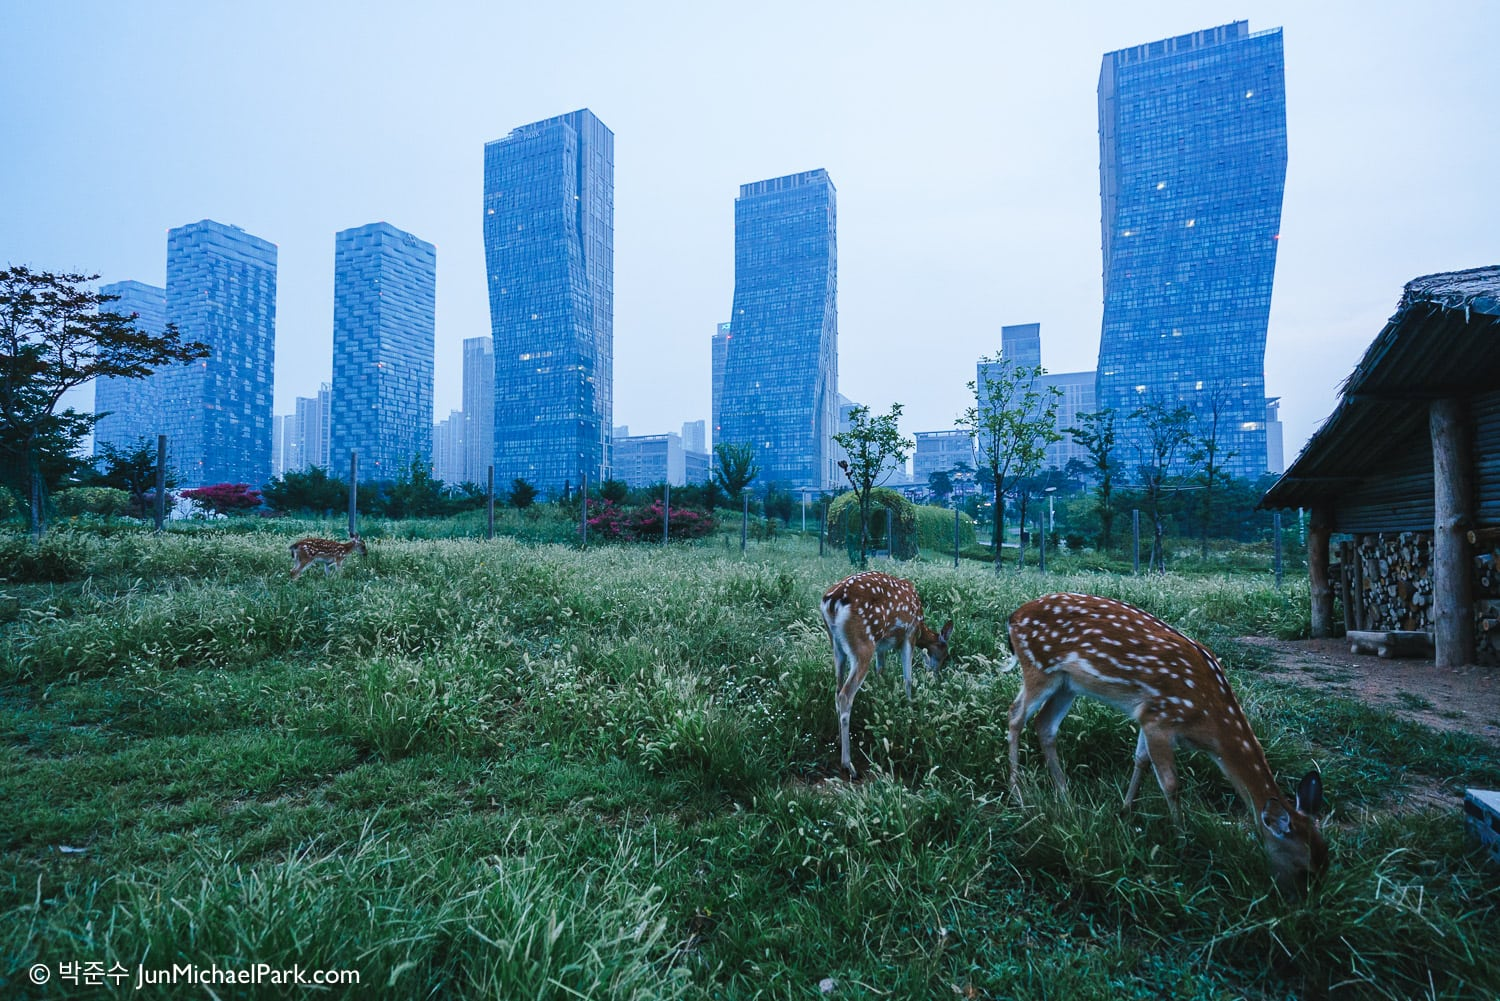 Captive deer-farm at the Central Park, Songdo, Incheon Free Economic Zone, South Korea. Aug 2015